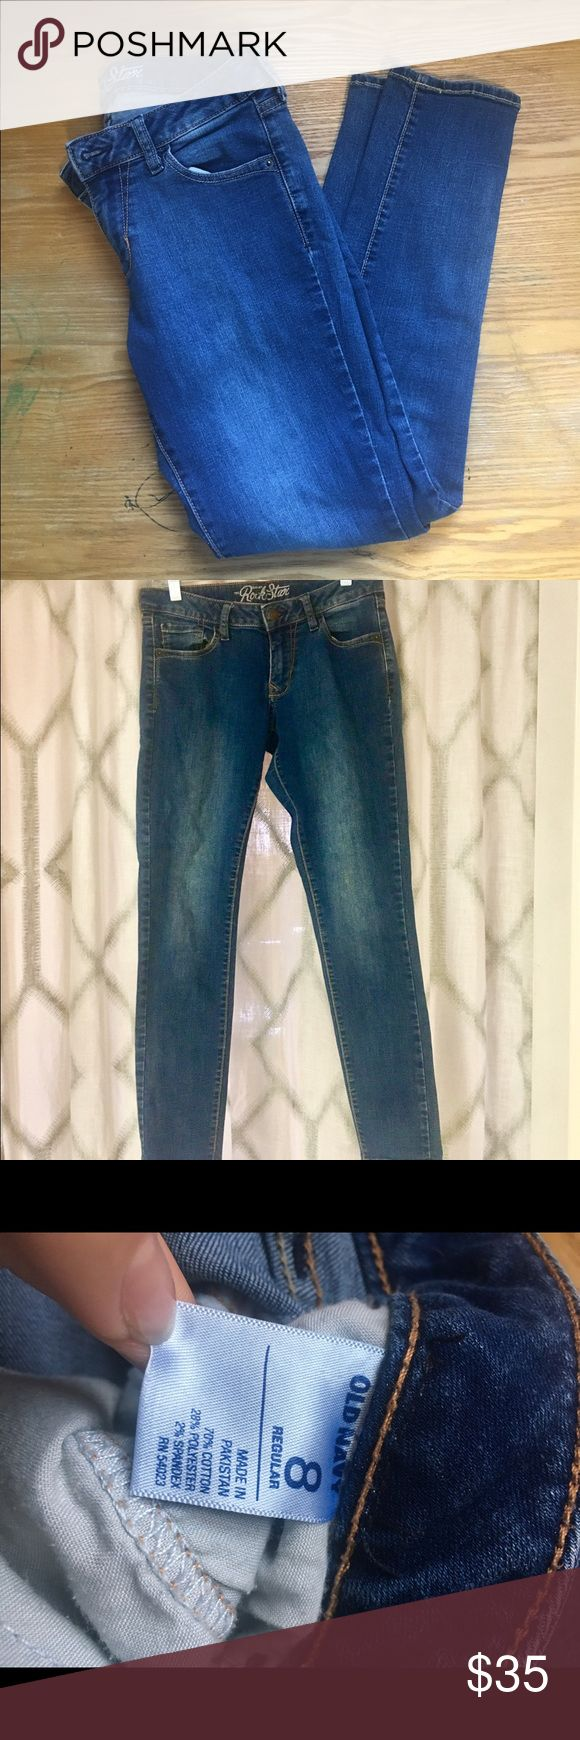 Old Navy Rockstar jeans Skinny style with faded look along the thighs Old Navy Jeans Skinny